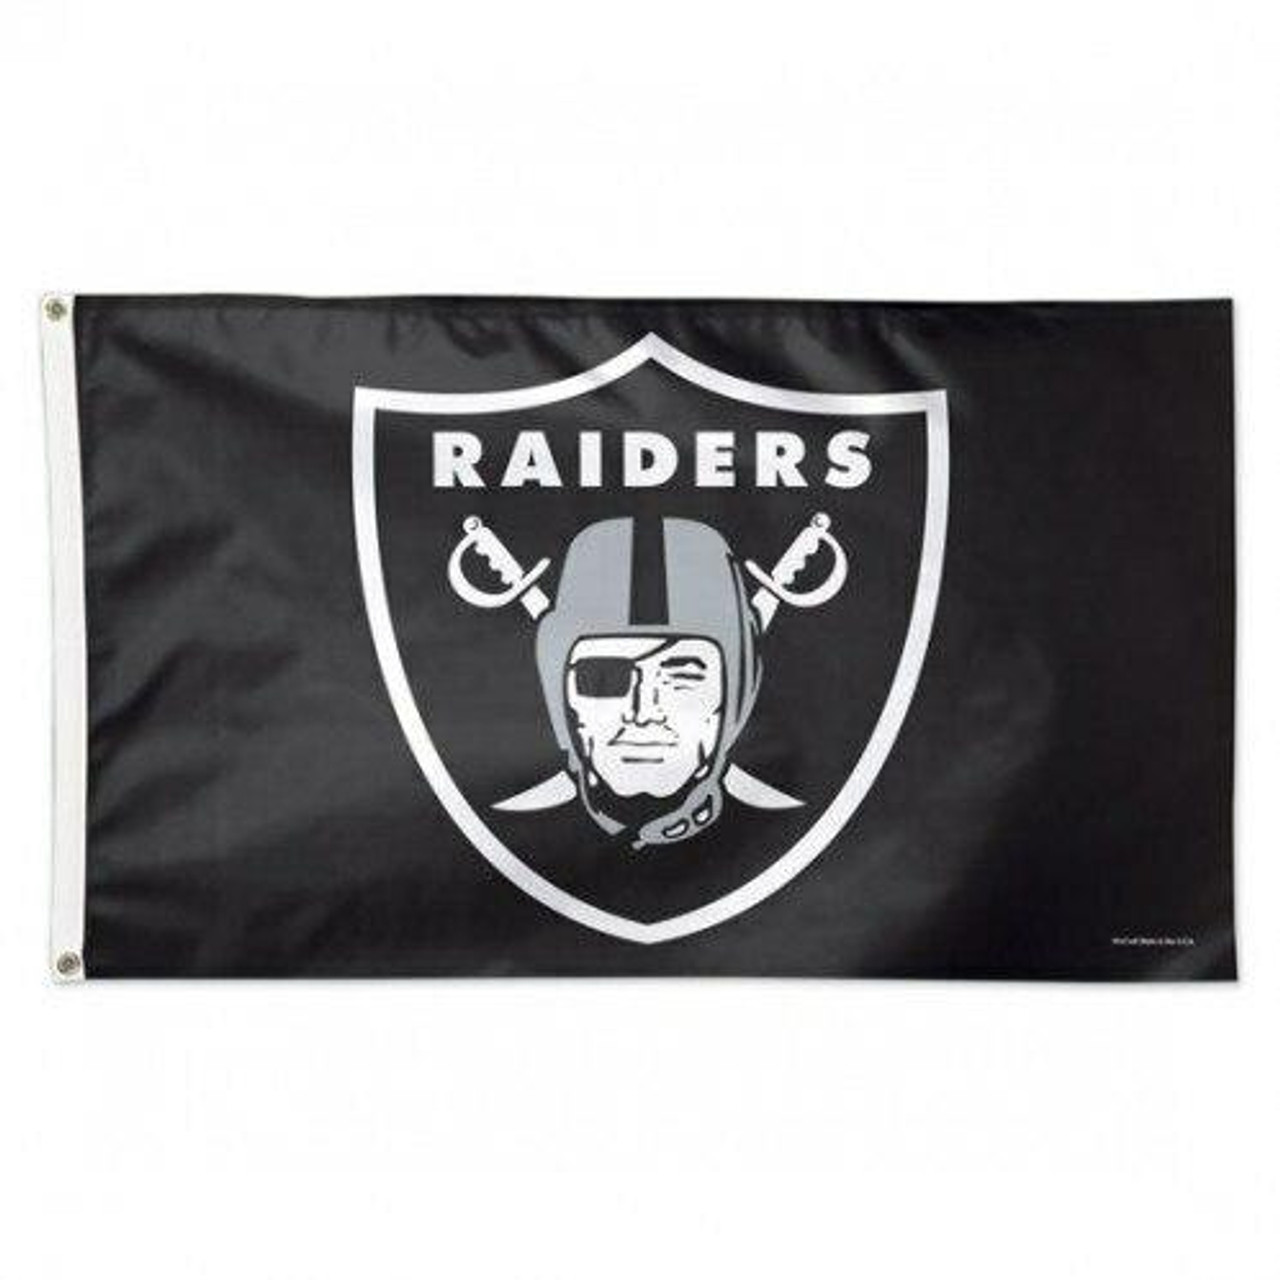 Black background with gray and white raiders logo